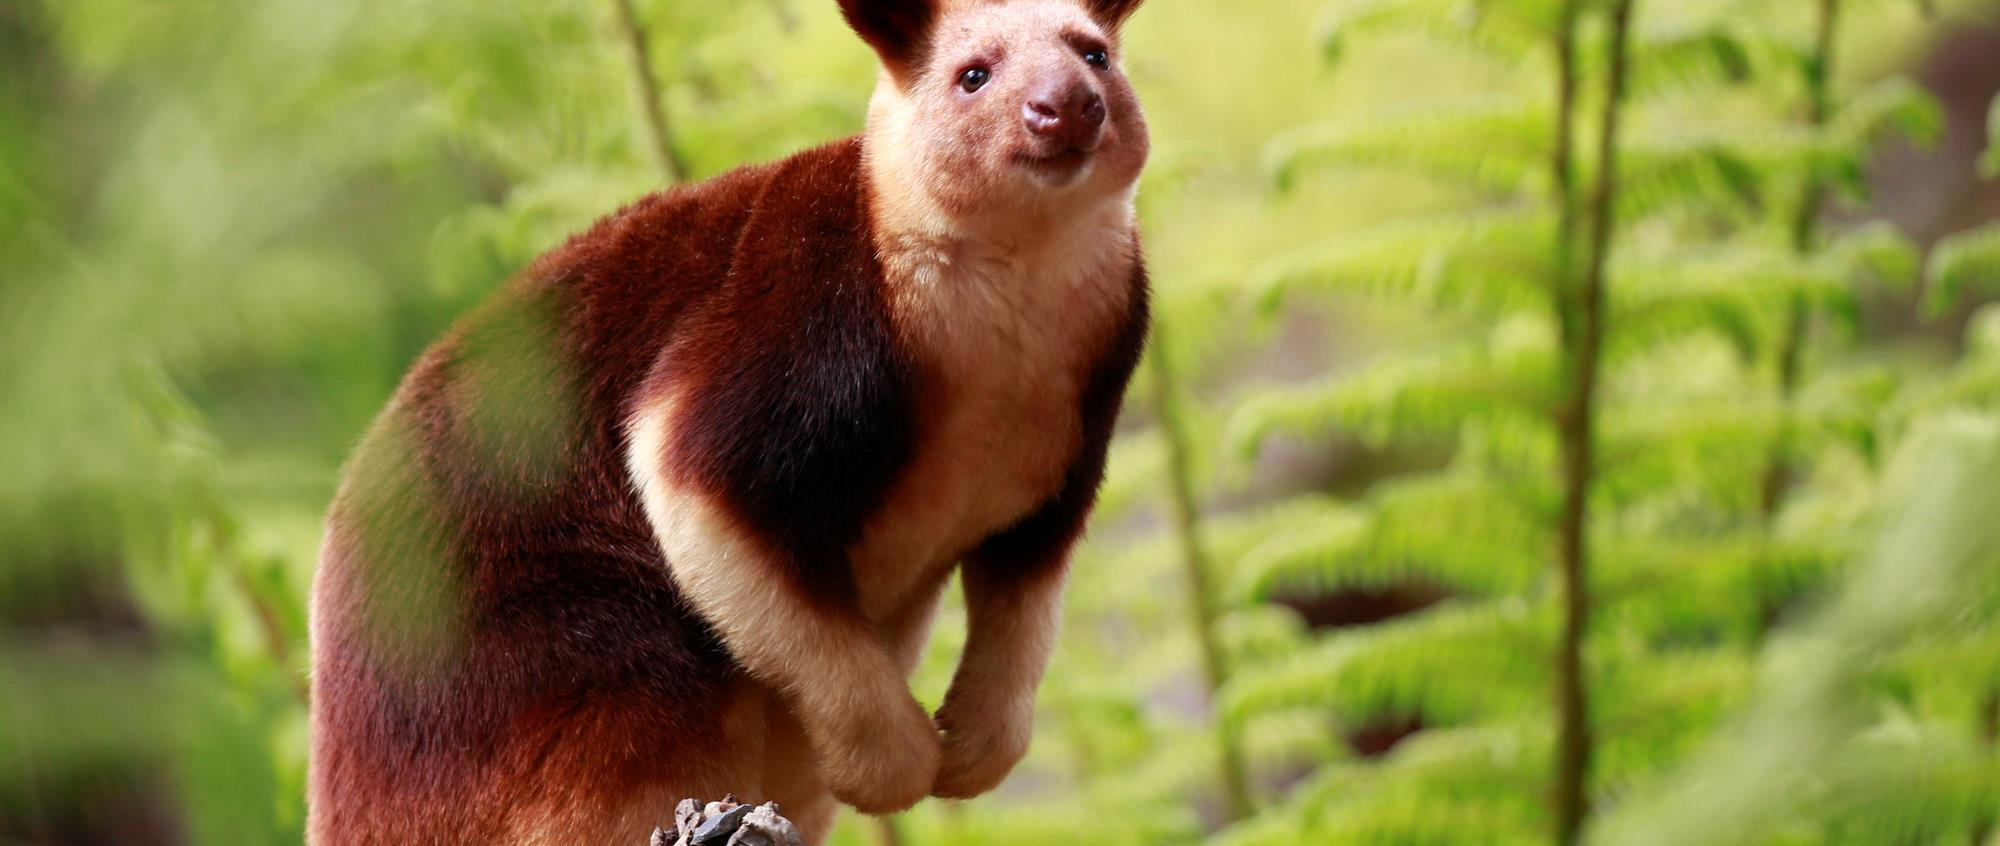 Tree kangaroo perching on a branch with blurred out green ferns in the background